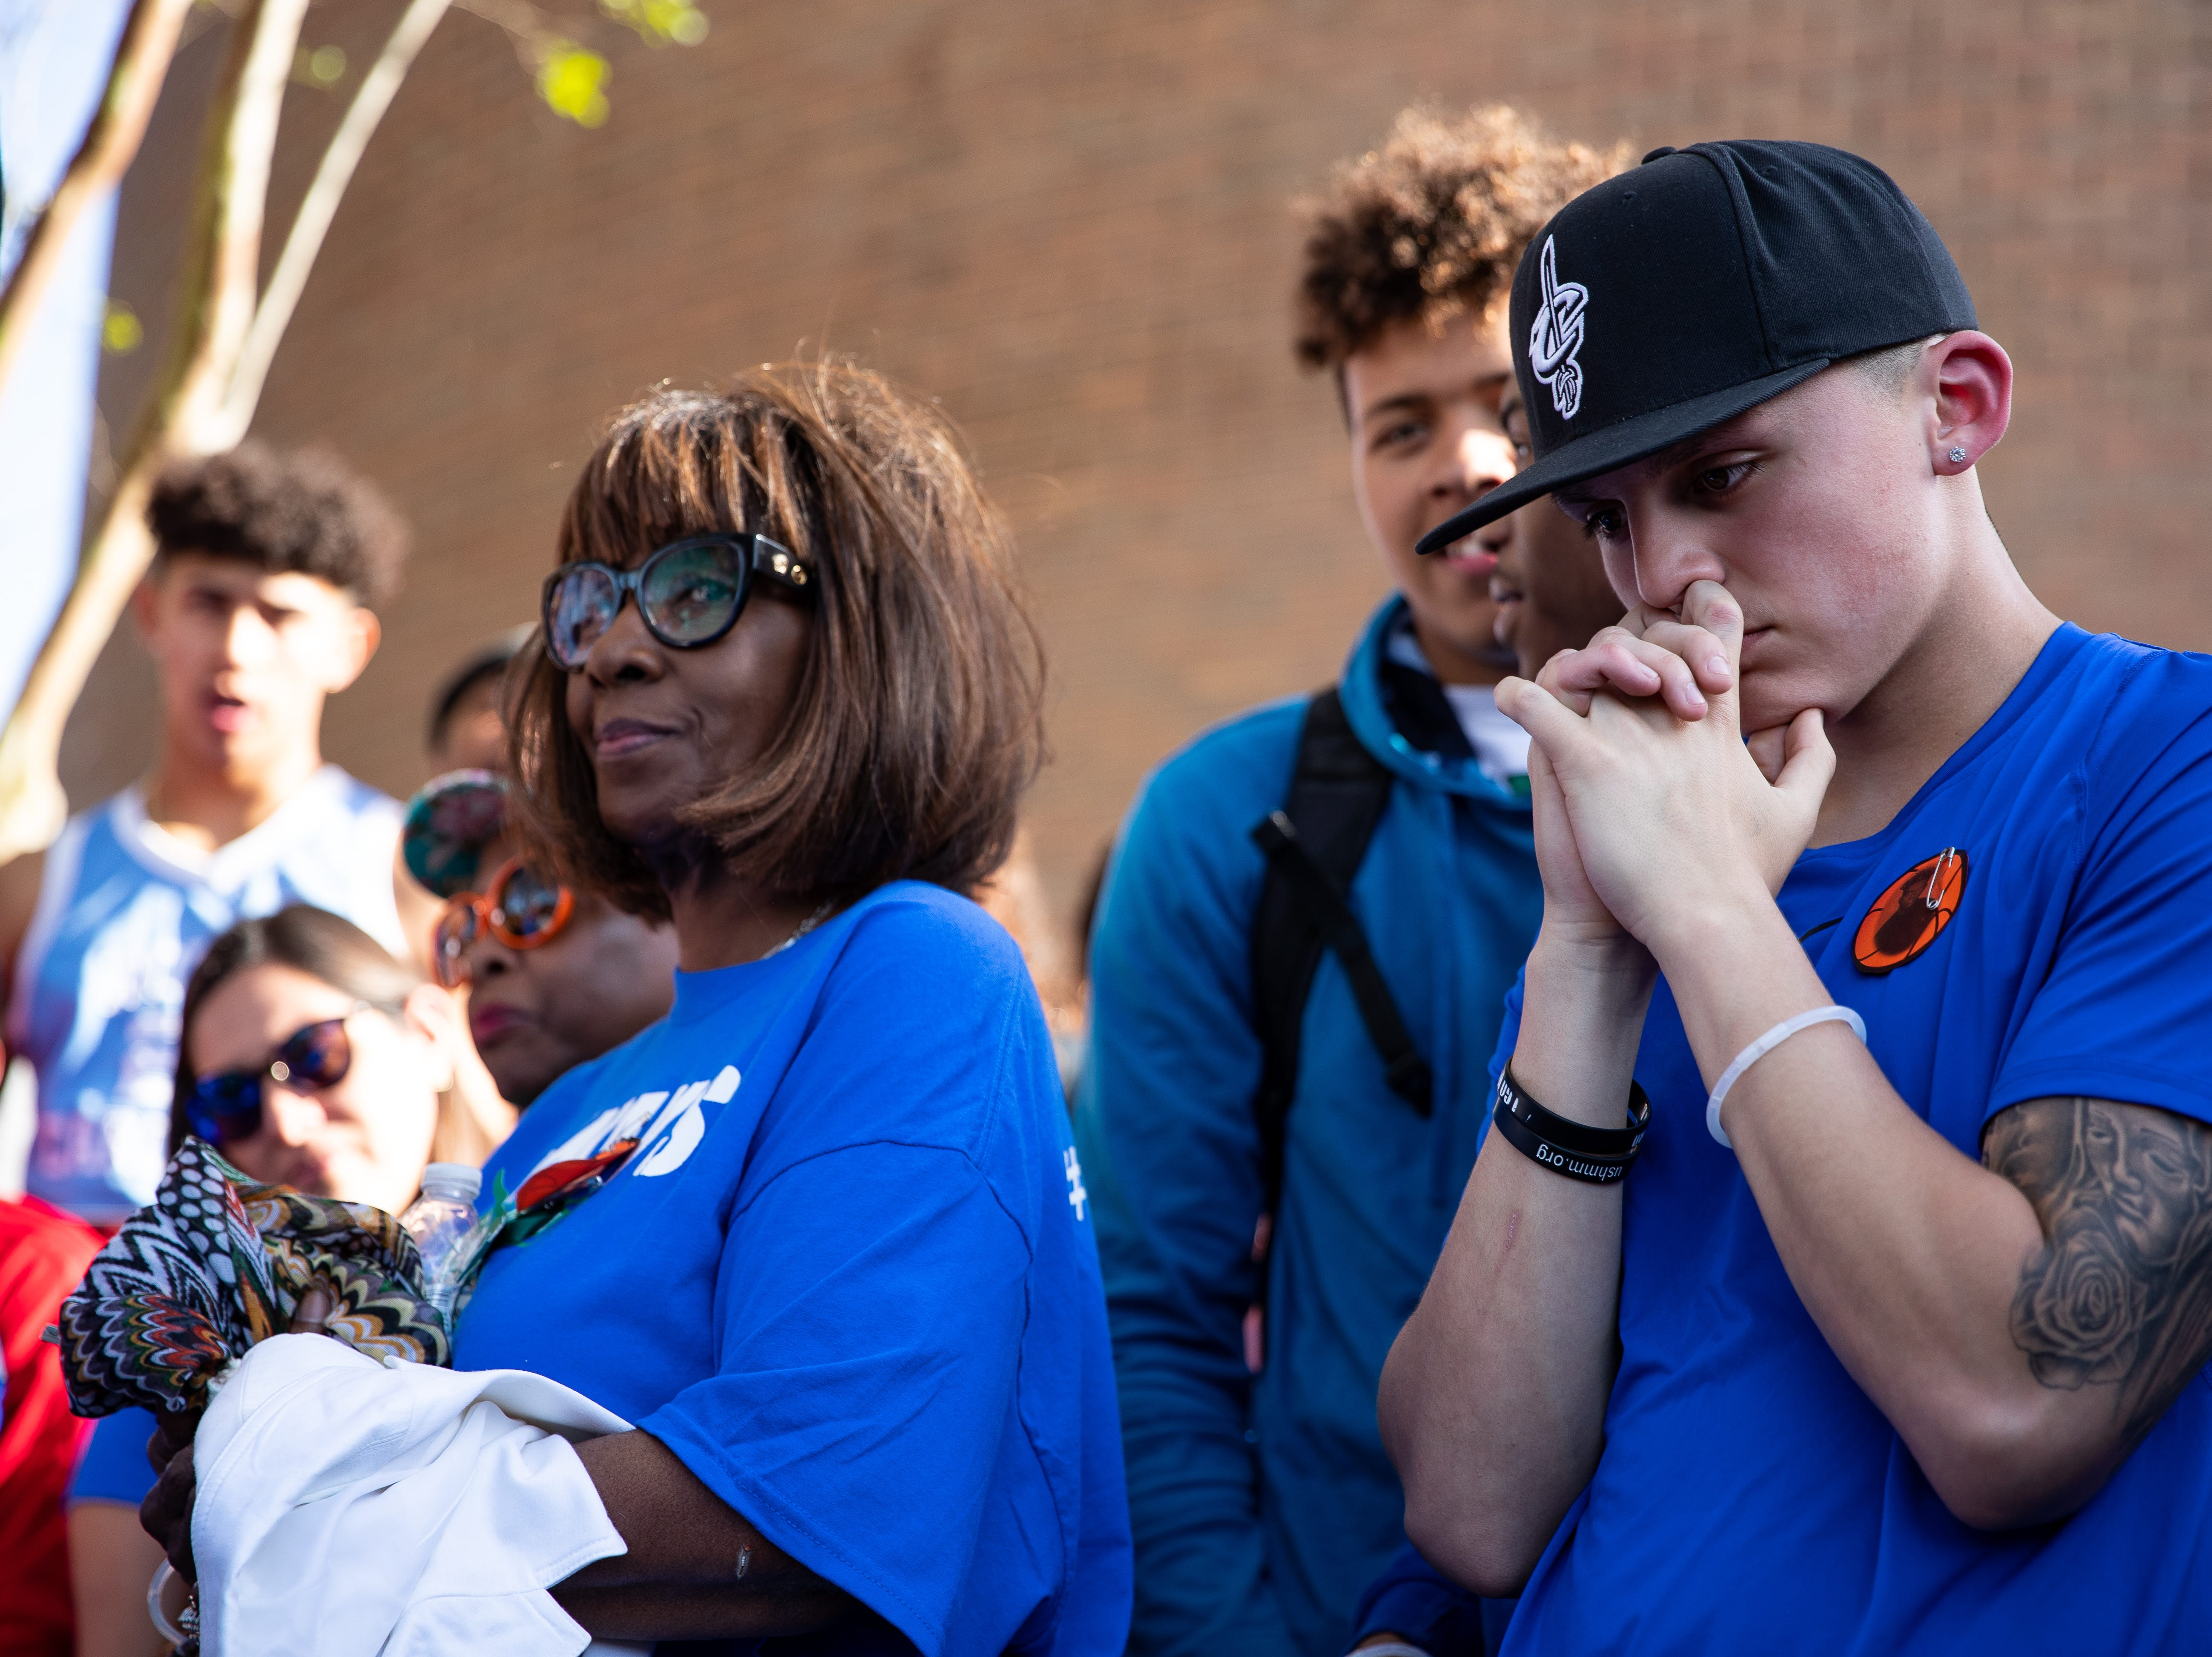 King High School students gather for a vigil remembering senior Je'Sani Smith on Monday, April 15, 2019. Je'Sani Smith's body was recovered Sunday afternoon near Bob Hall Pier after drowning on Whitecap Beach last week.